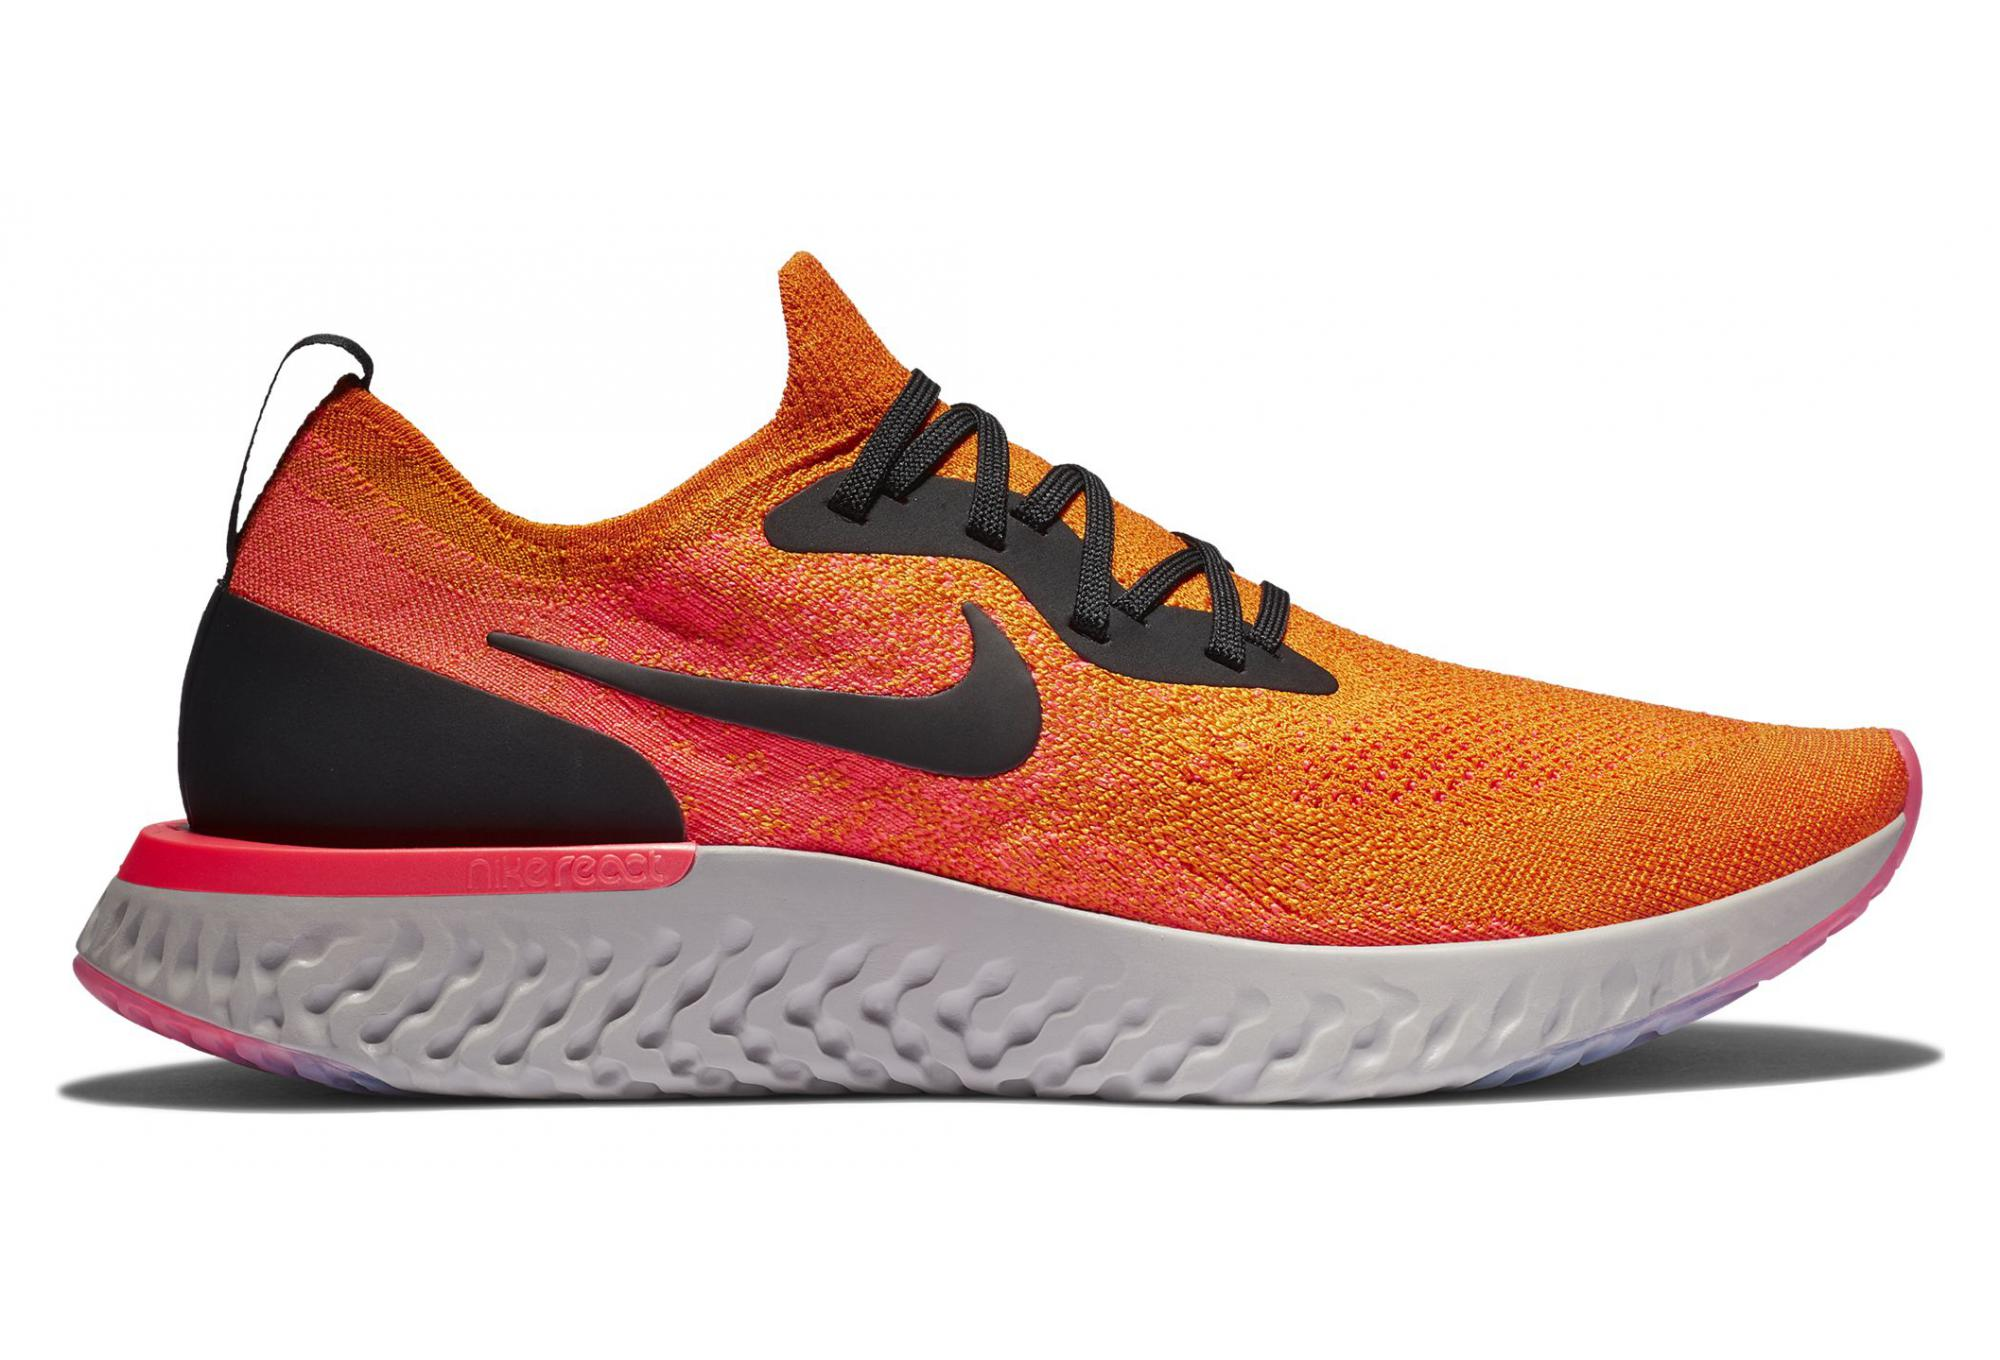 6a129ab000b5 Chaussures de Running Nike Epic React Flyknit Orange   Rose ...